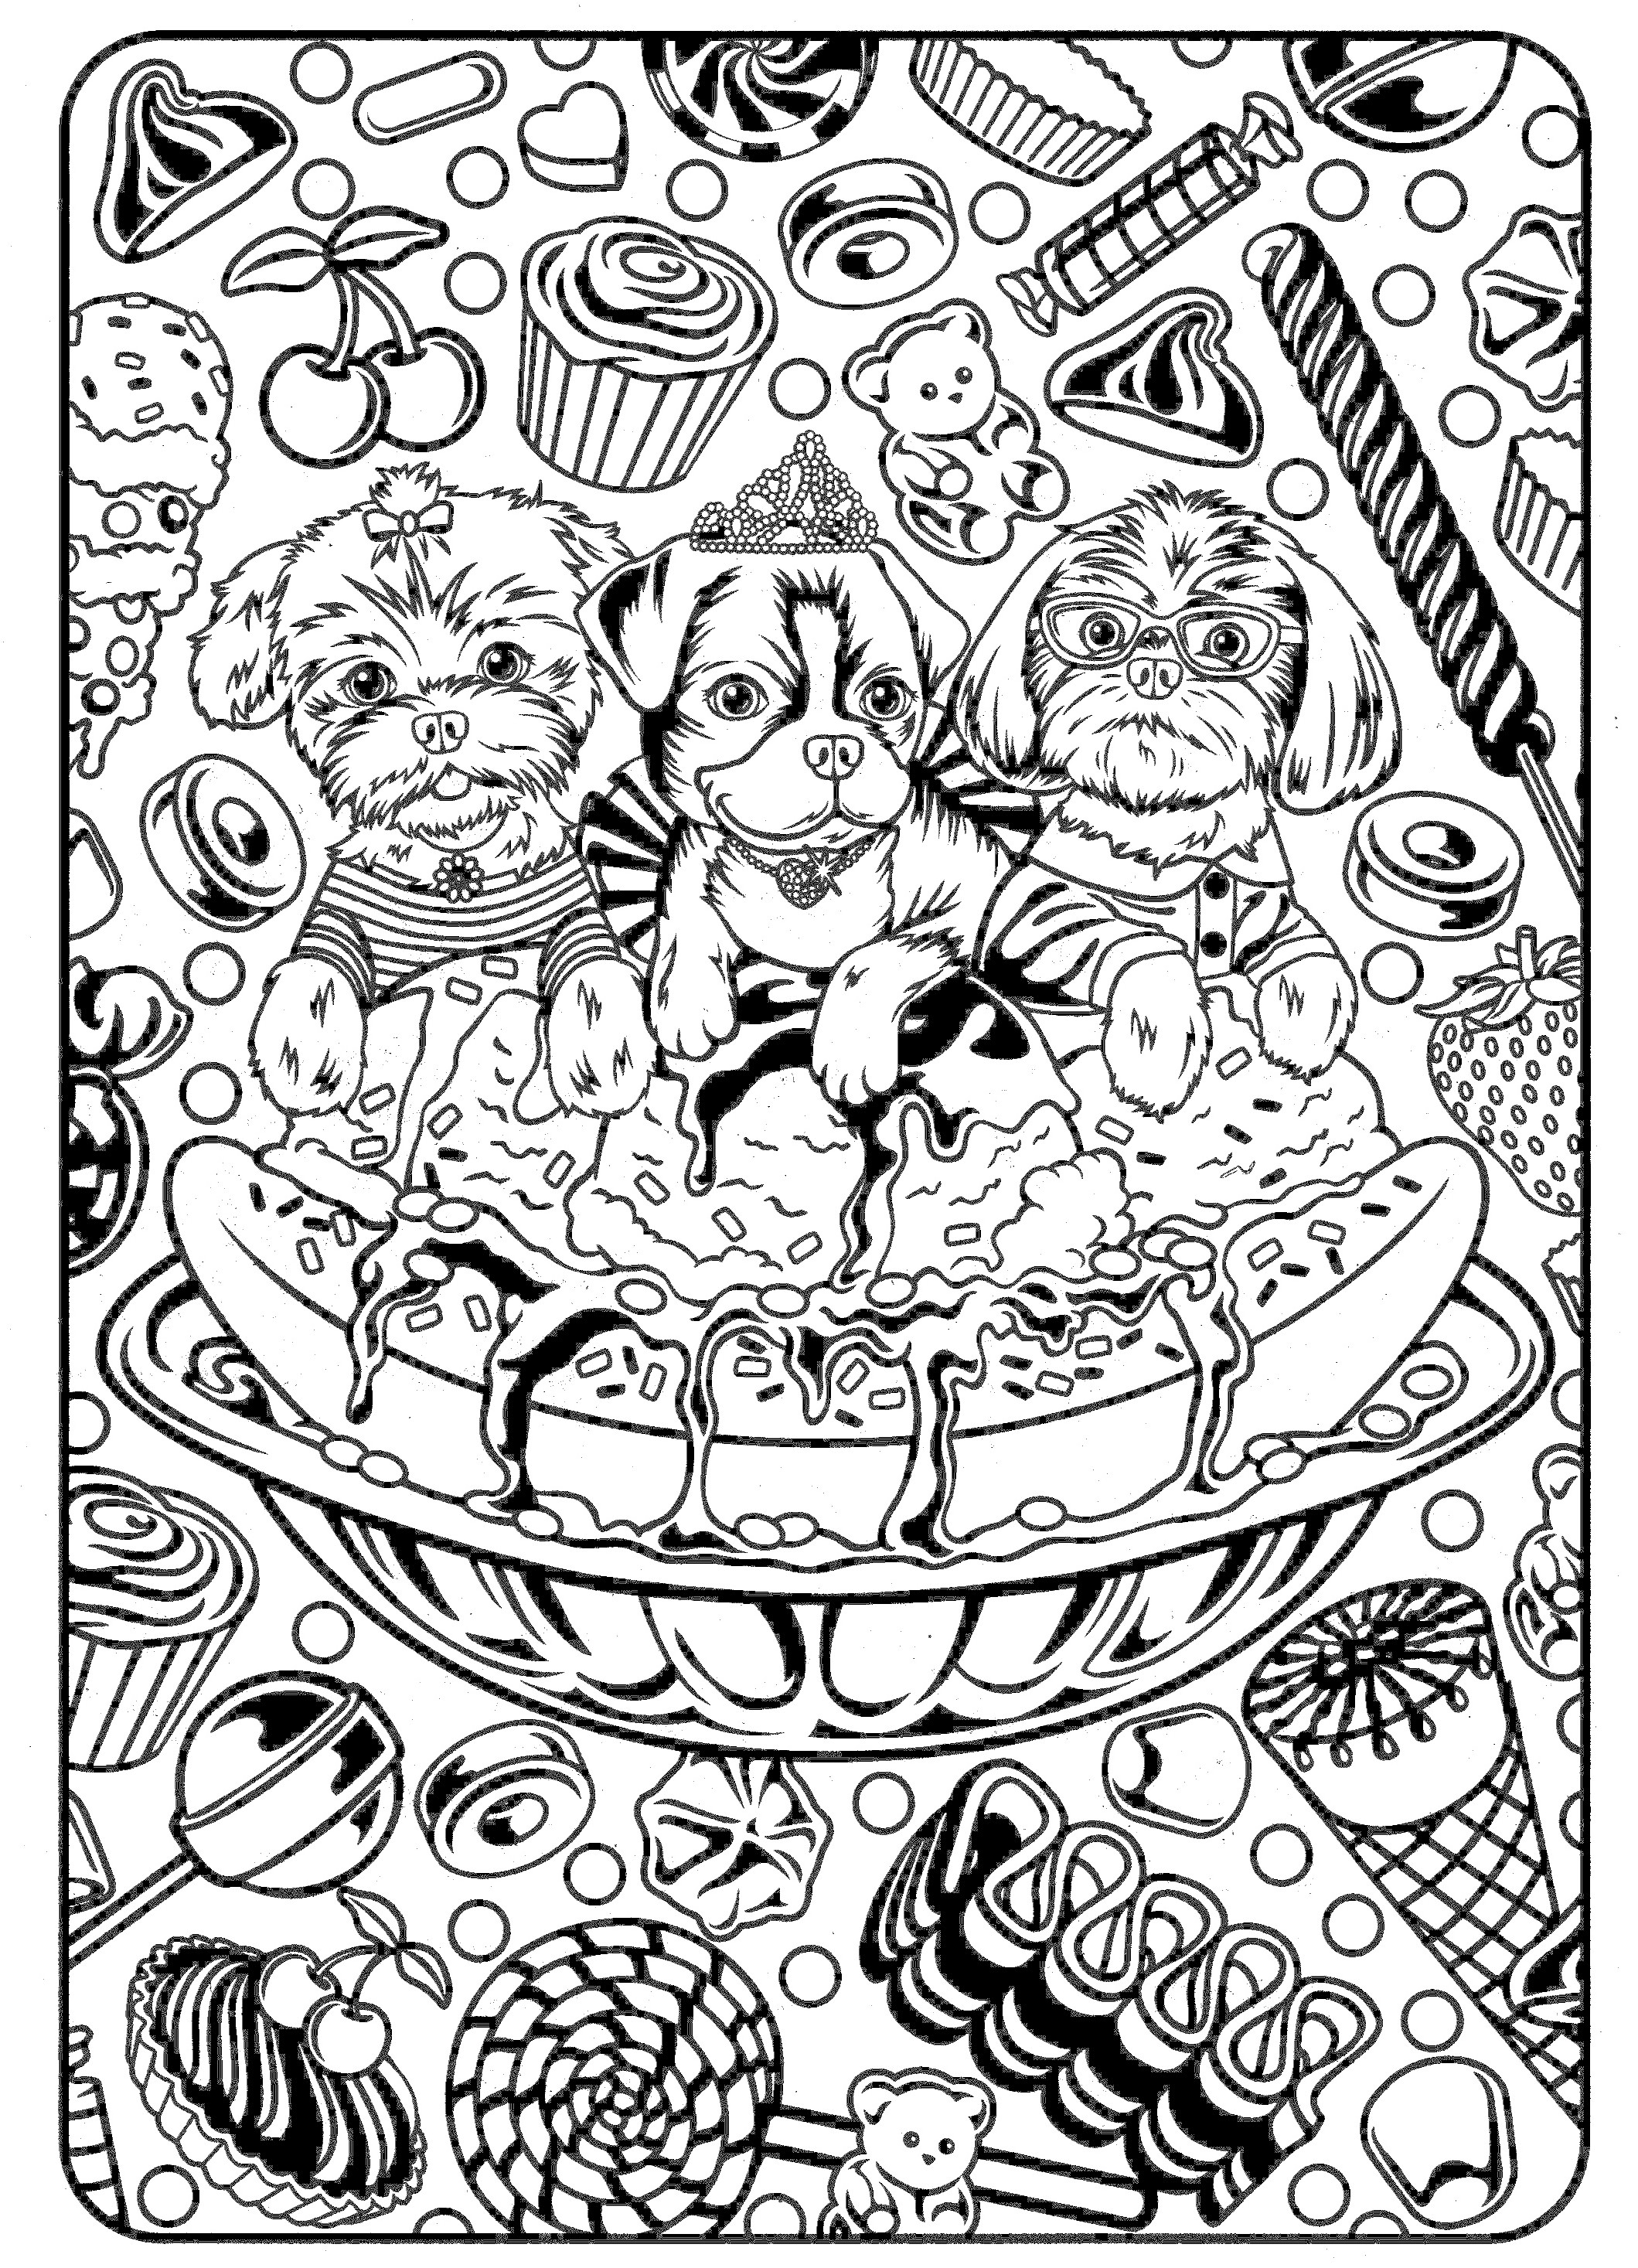 color pages printable finding nemo coloring pages for kids free printable pages color printable